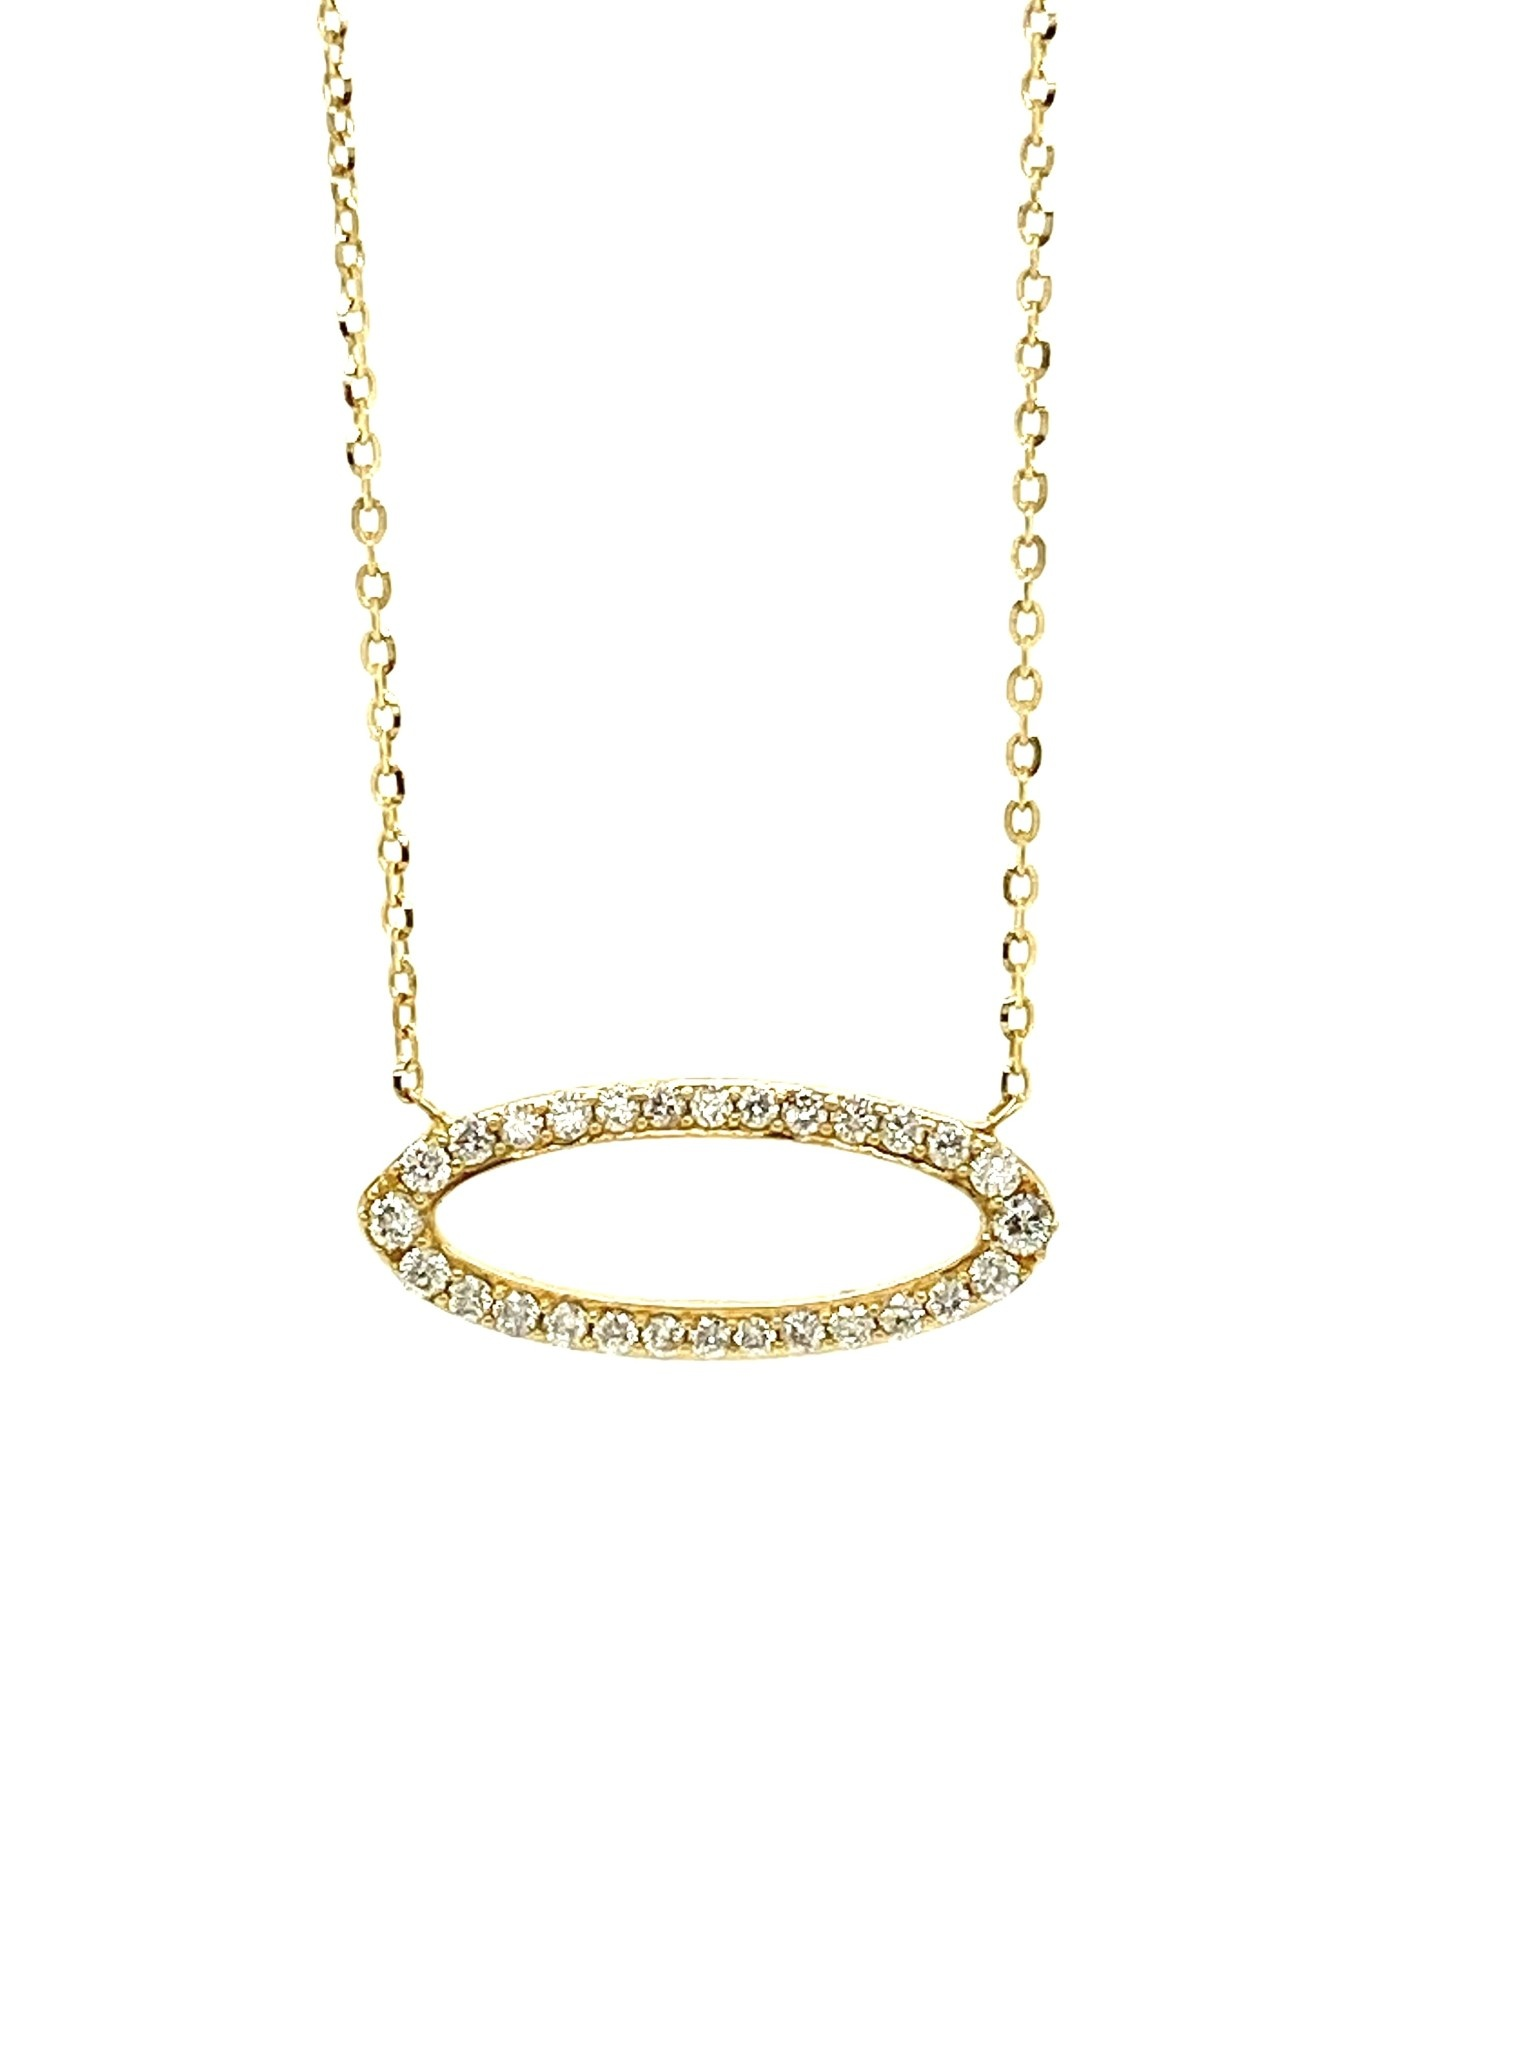 14K Yellow Gold 0.21ct Diamonds Oval Necklace